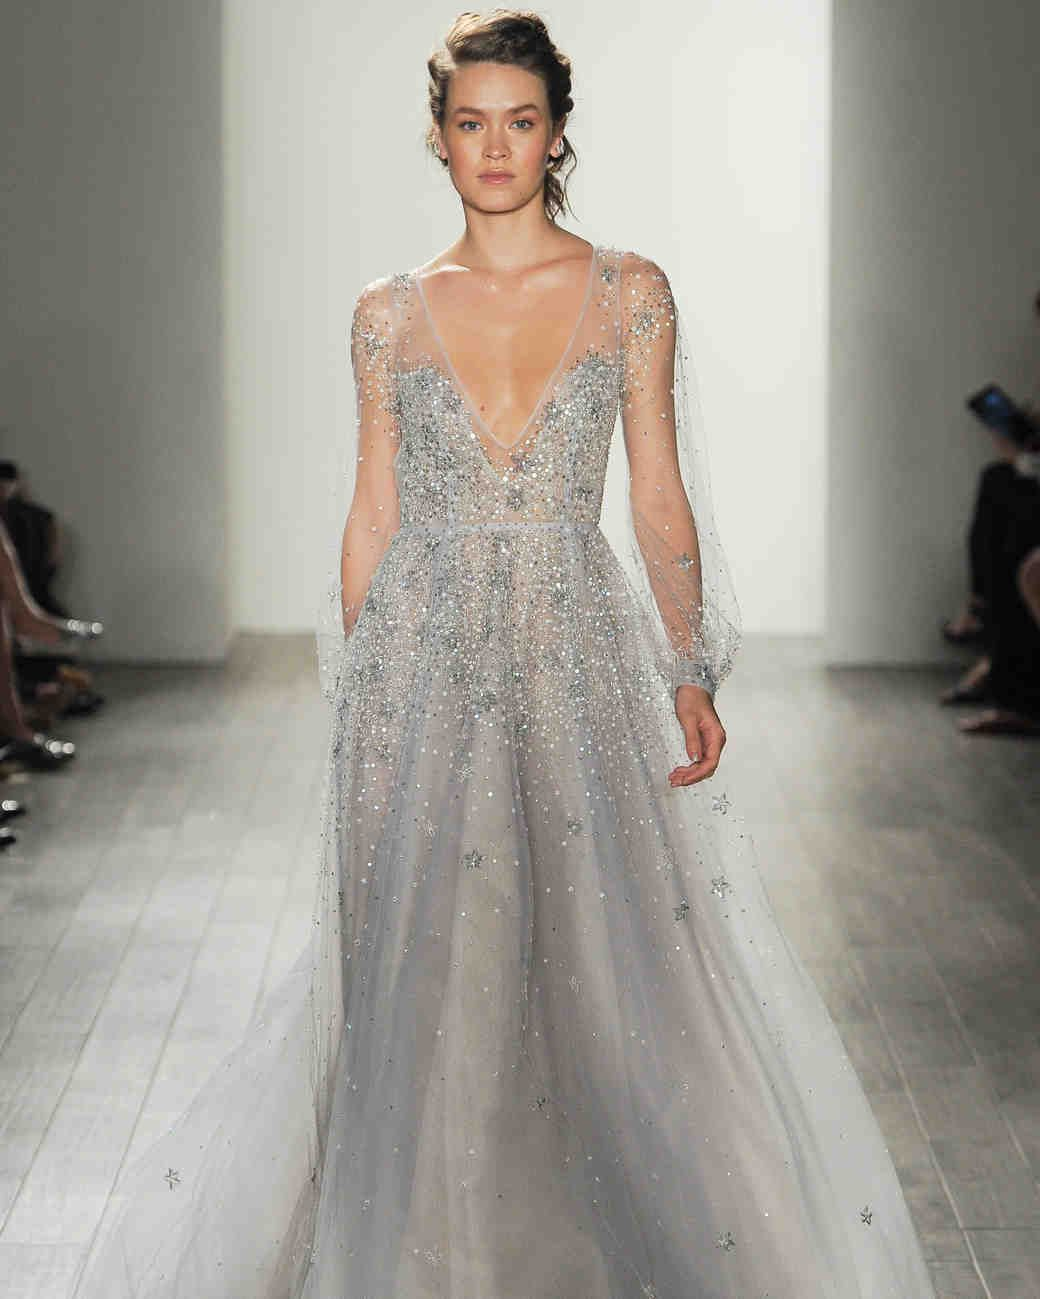 Bridal water lily 2226 wedding dresses photos brides com - See The New Hayley Paige Wedding Dresses From The Designer S Fall 2017 Bridal Collection